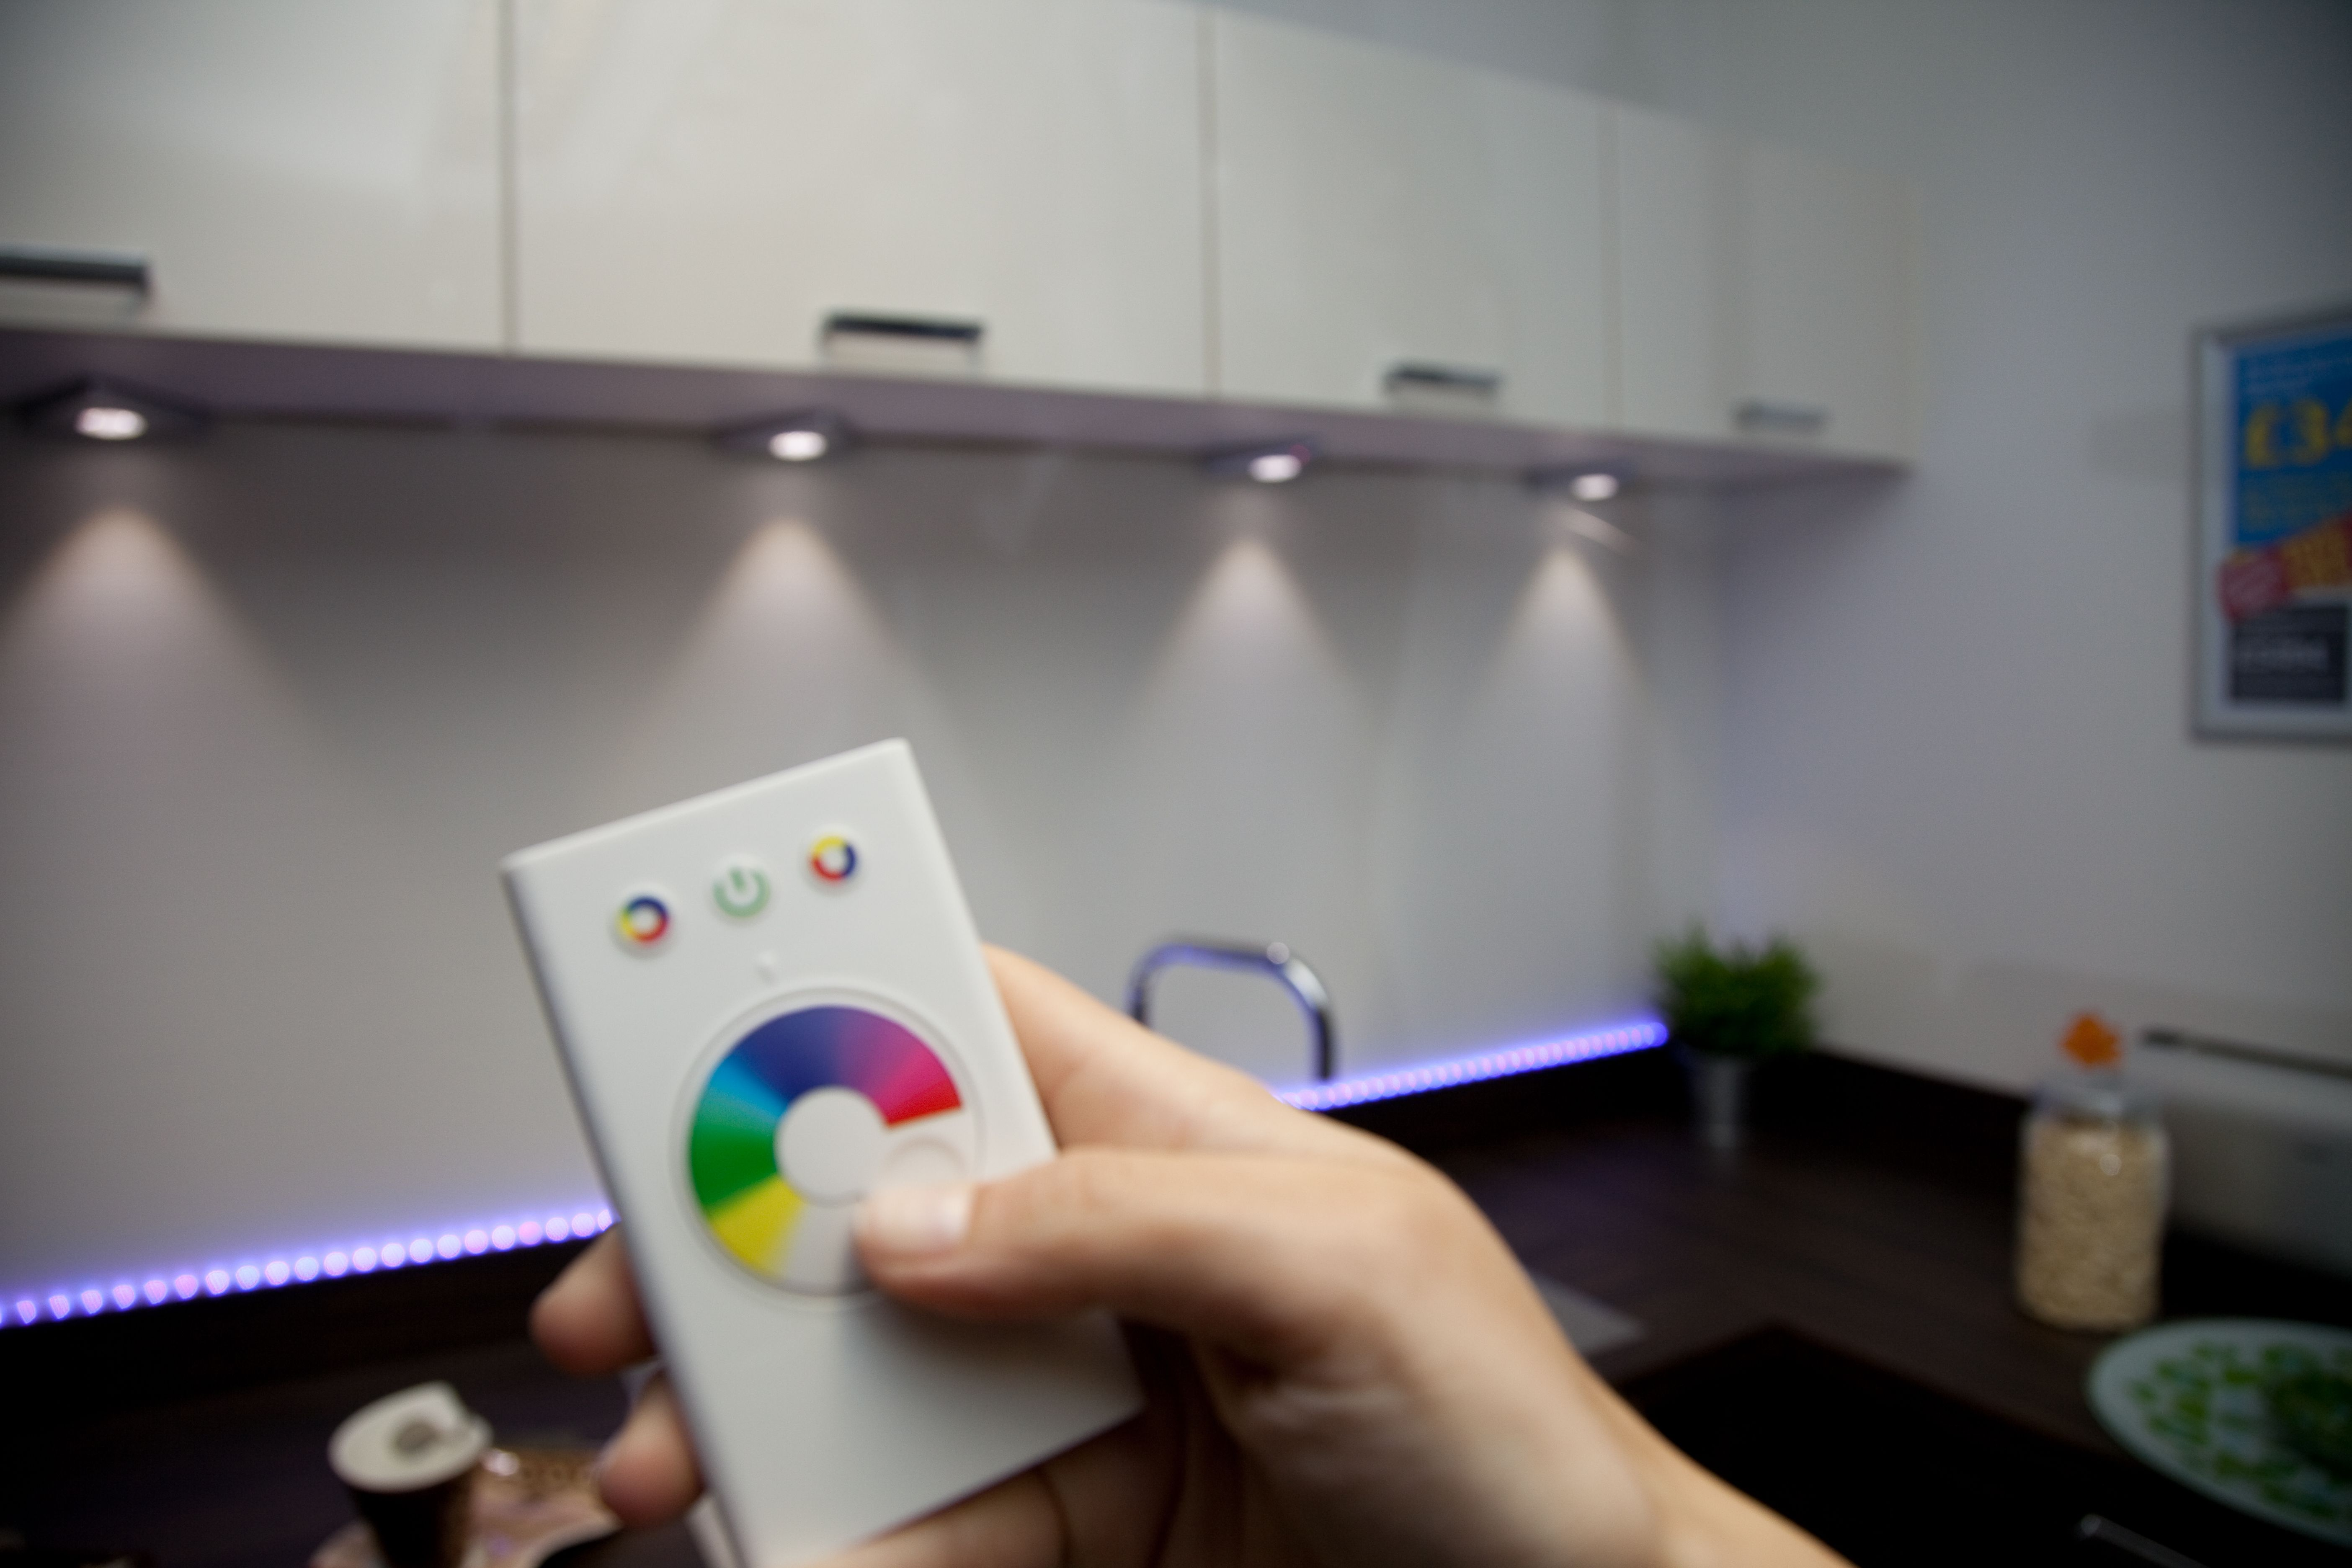 led kitchen lights Change the mood by changing the colour colour changing LED lighting helps set ambiance in